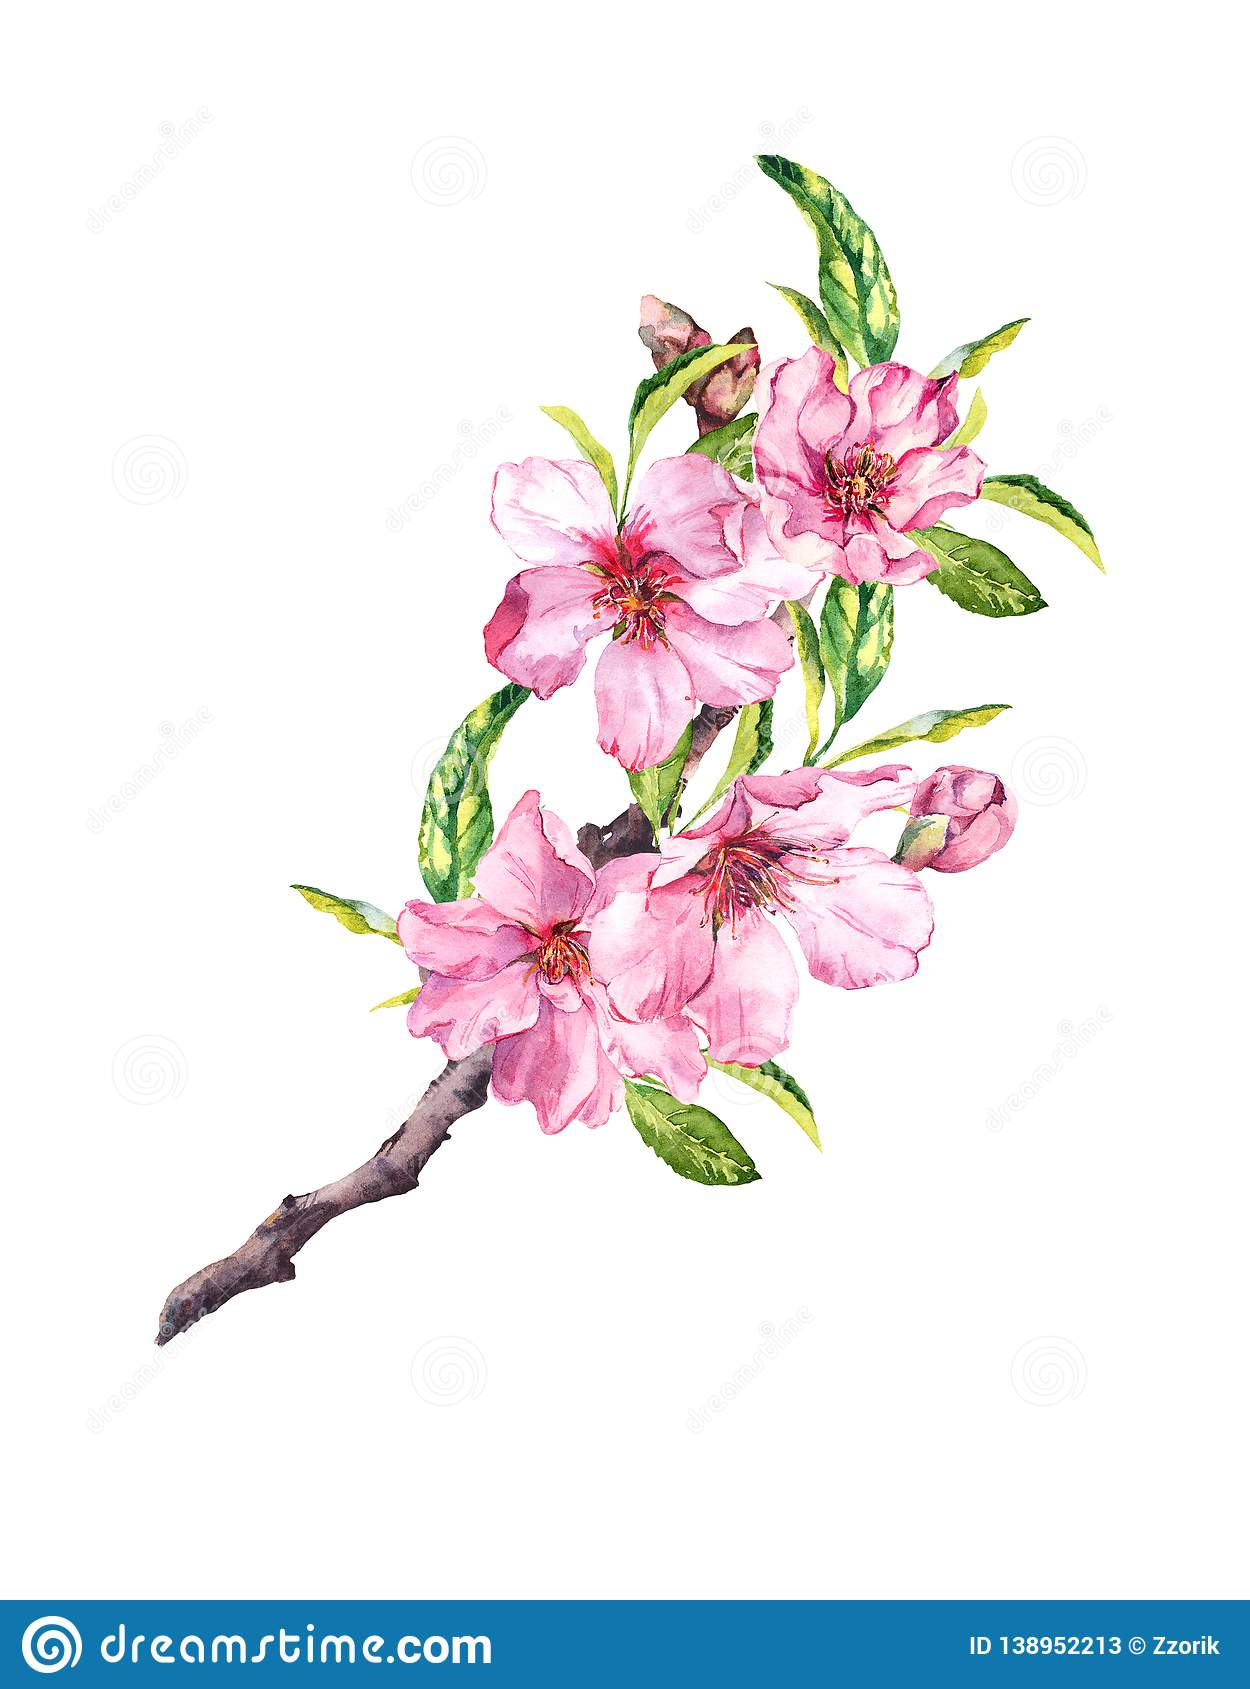 Spring time pink flowers. Cherry, apple, sakura blossom floral branch. Watercolour